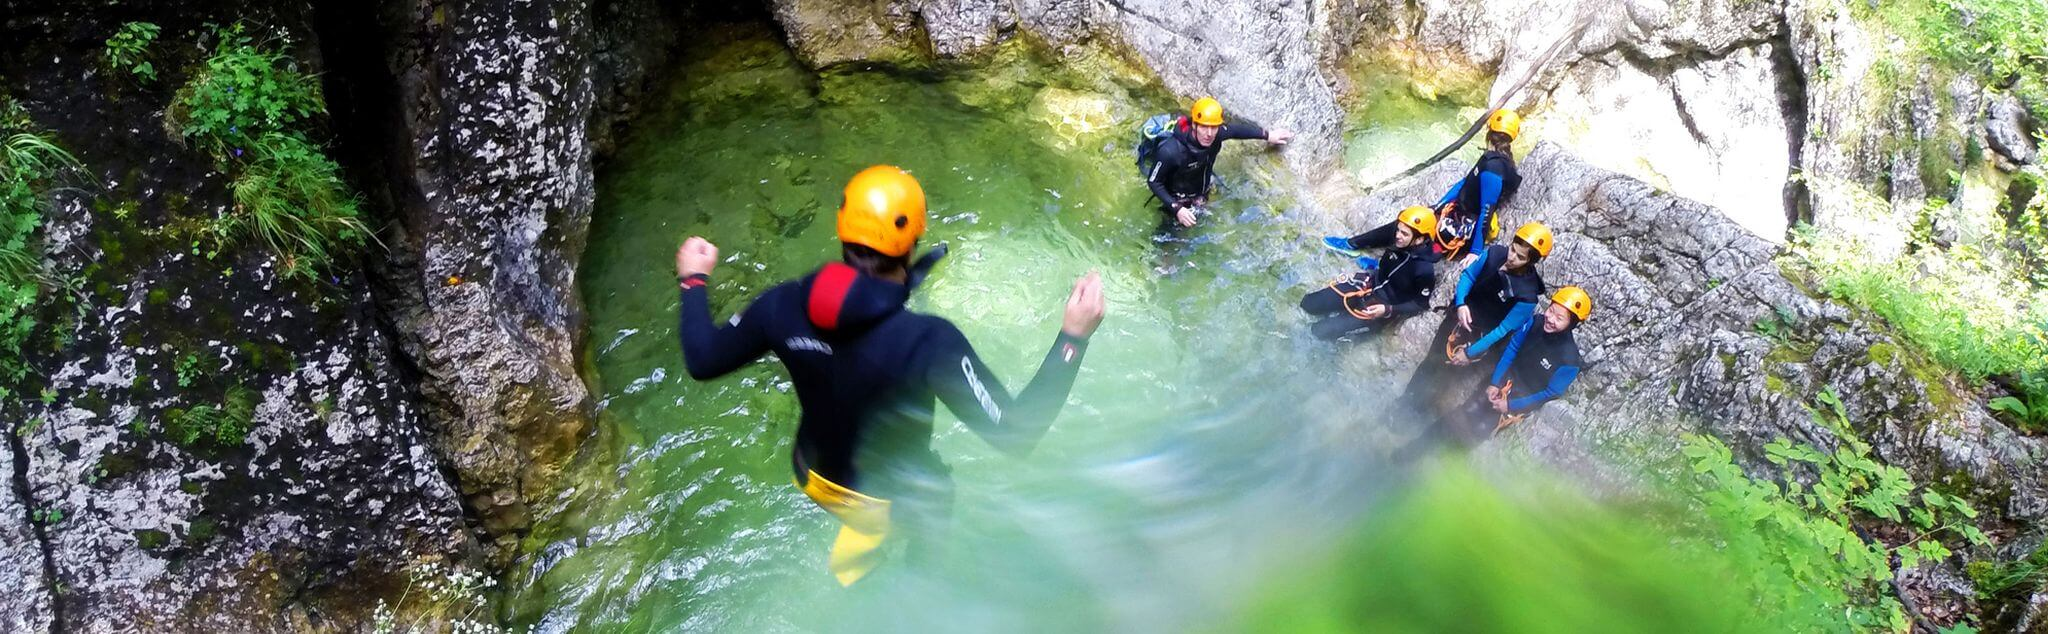 Canyoning in United Kingdom